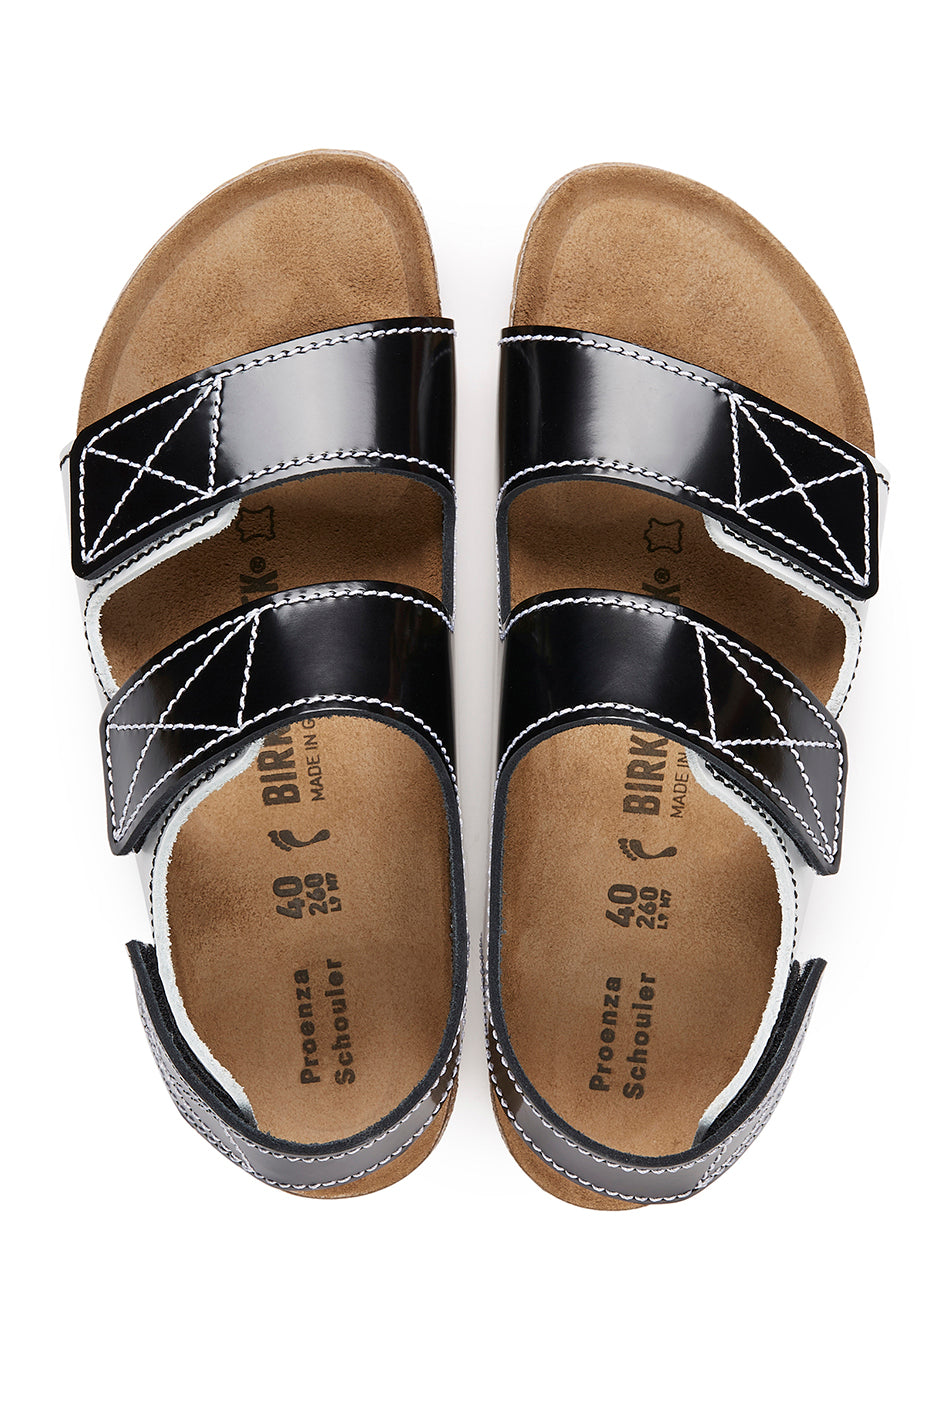 proenza schouler - Birkenstock Edition Milano Sandal, black and white